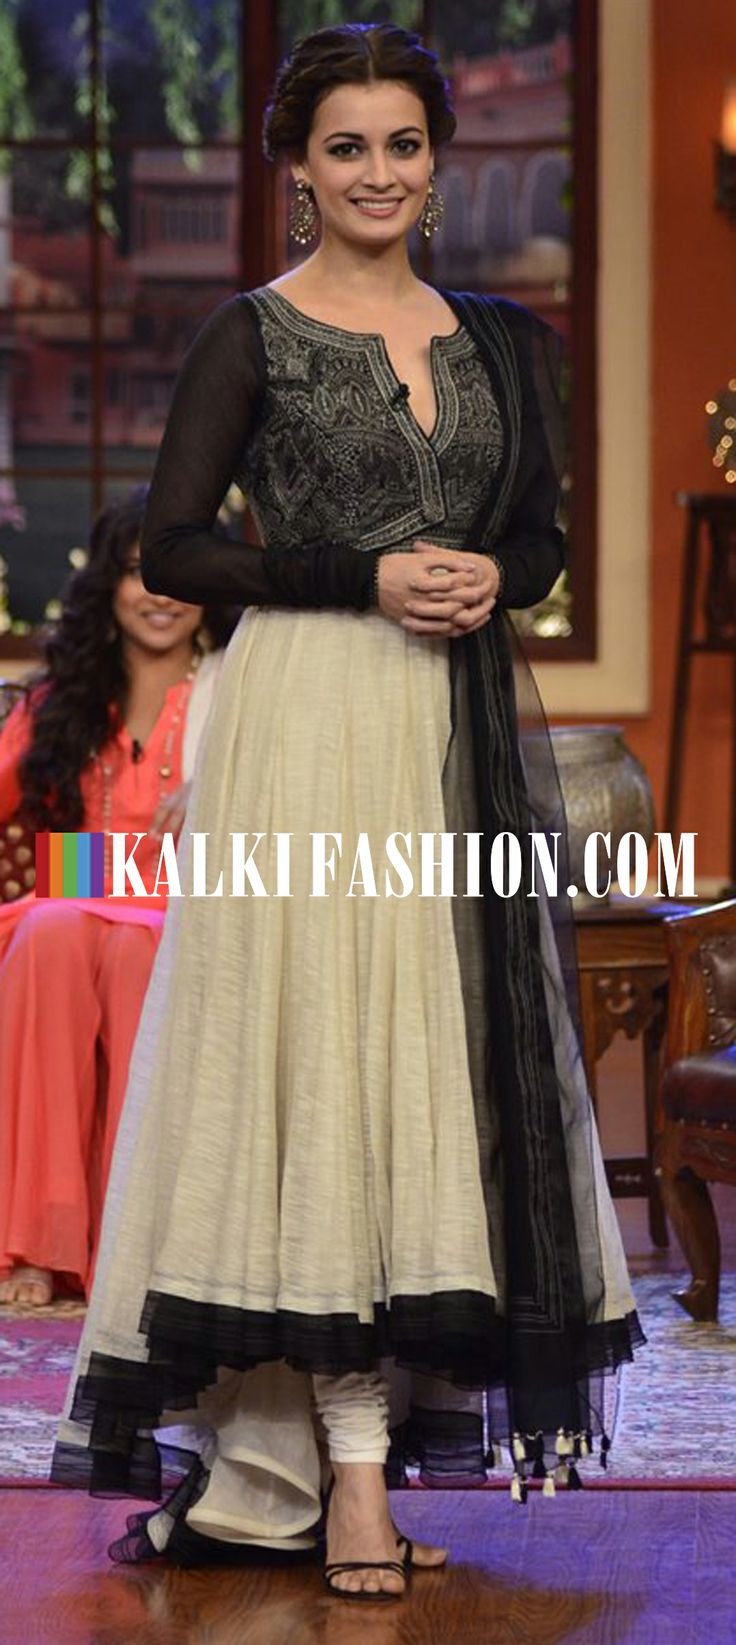 Dia Mirza attended the show Comedy Nights with Kalip in a beige and black Tarun Tahiliani suit to promote Bobby Jasoos movie http://www.kalkifashion.com/